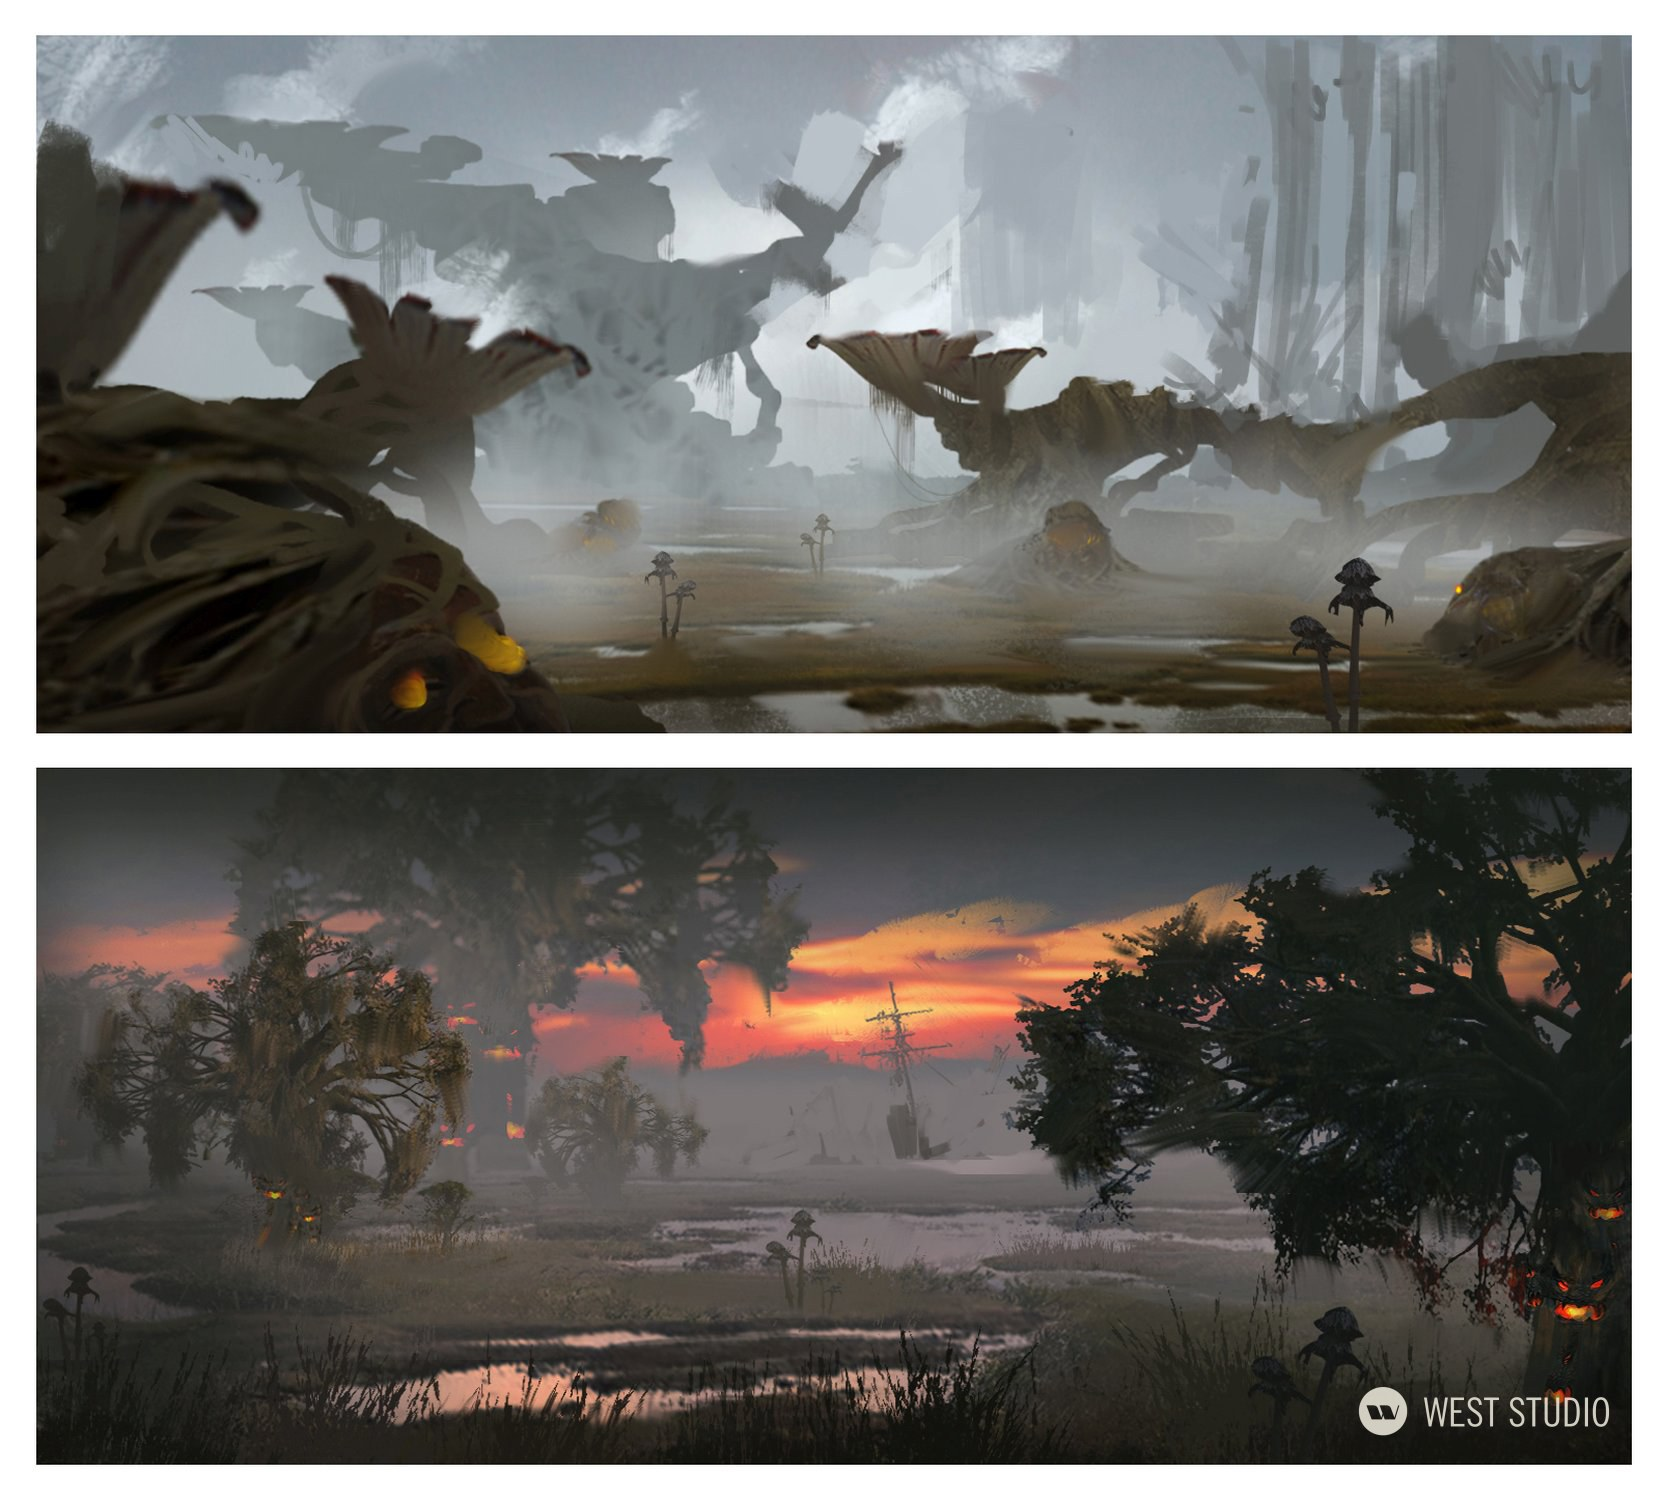 Environment Concepts, World Building, Flora and Fauna Design